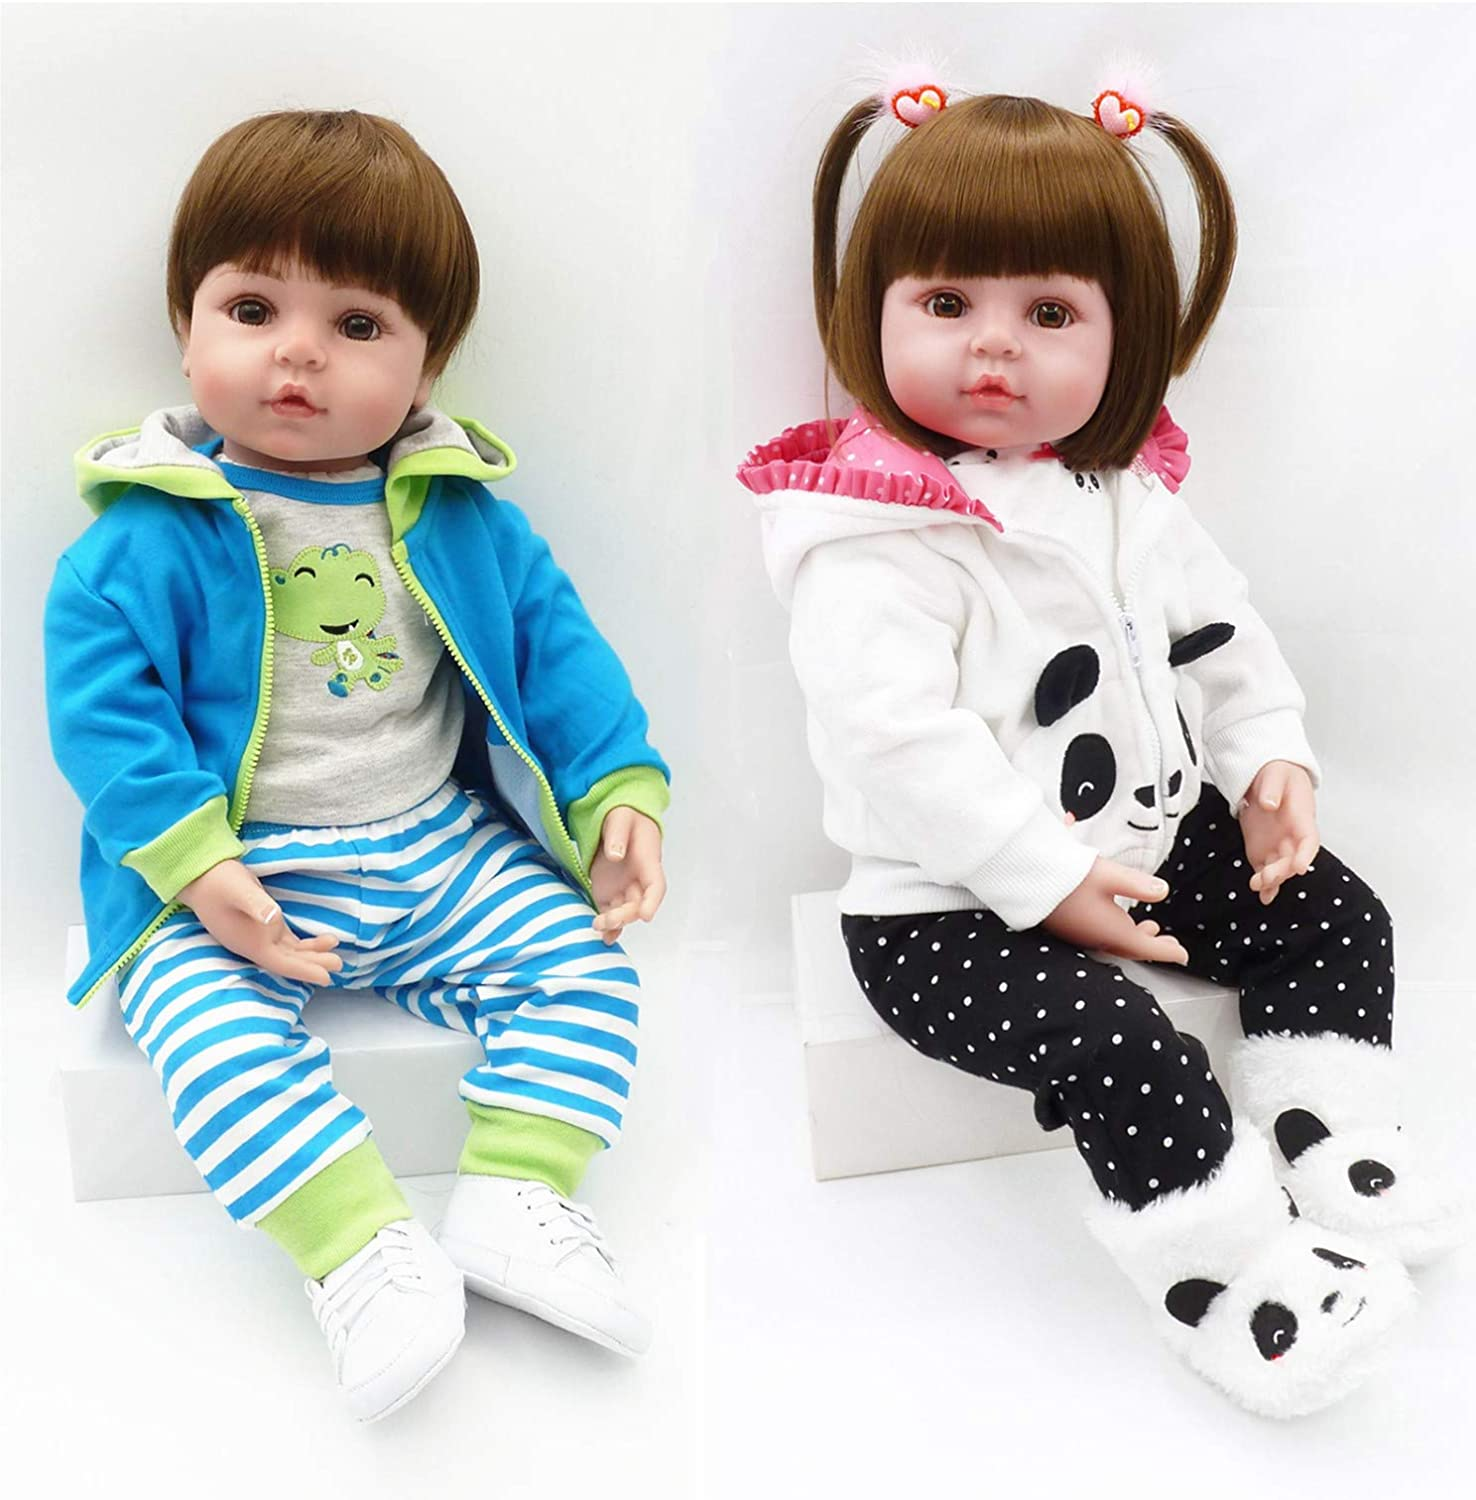 Real Life Baby Dolls 24 inch Reborn Twins Boy/&Girl Toddler Dolls Gifts for Twins